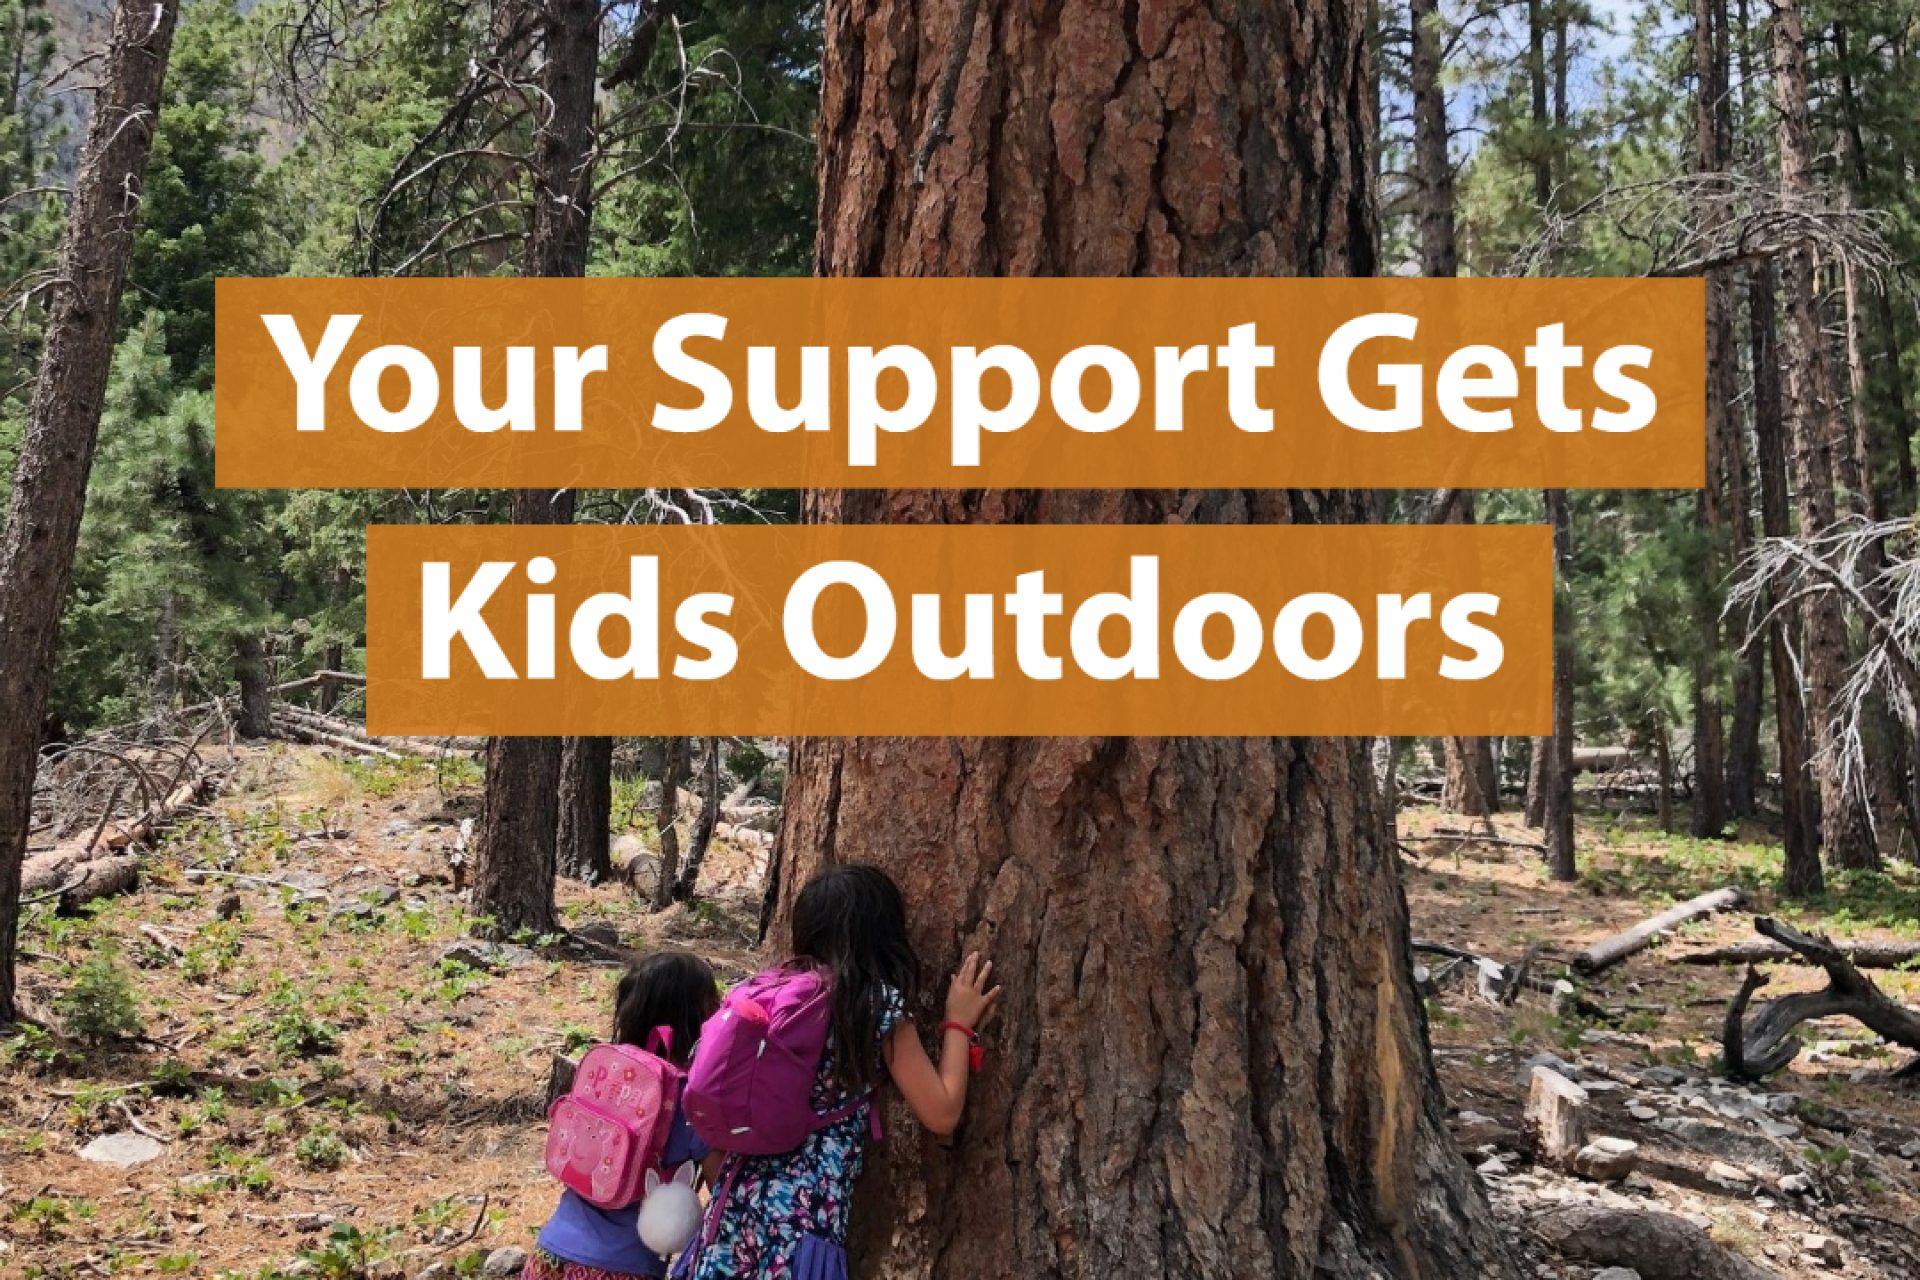 Kids smelling sweet scent of a large ponderosa pine tree in forest under title your support gets kids outdoors